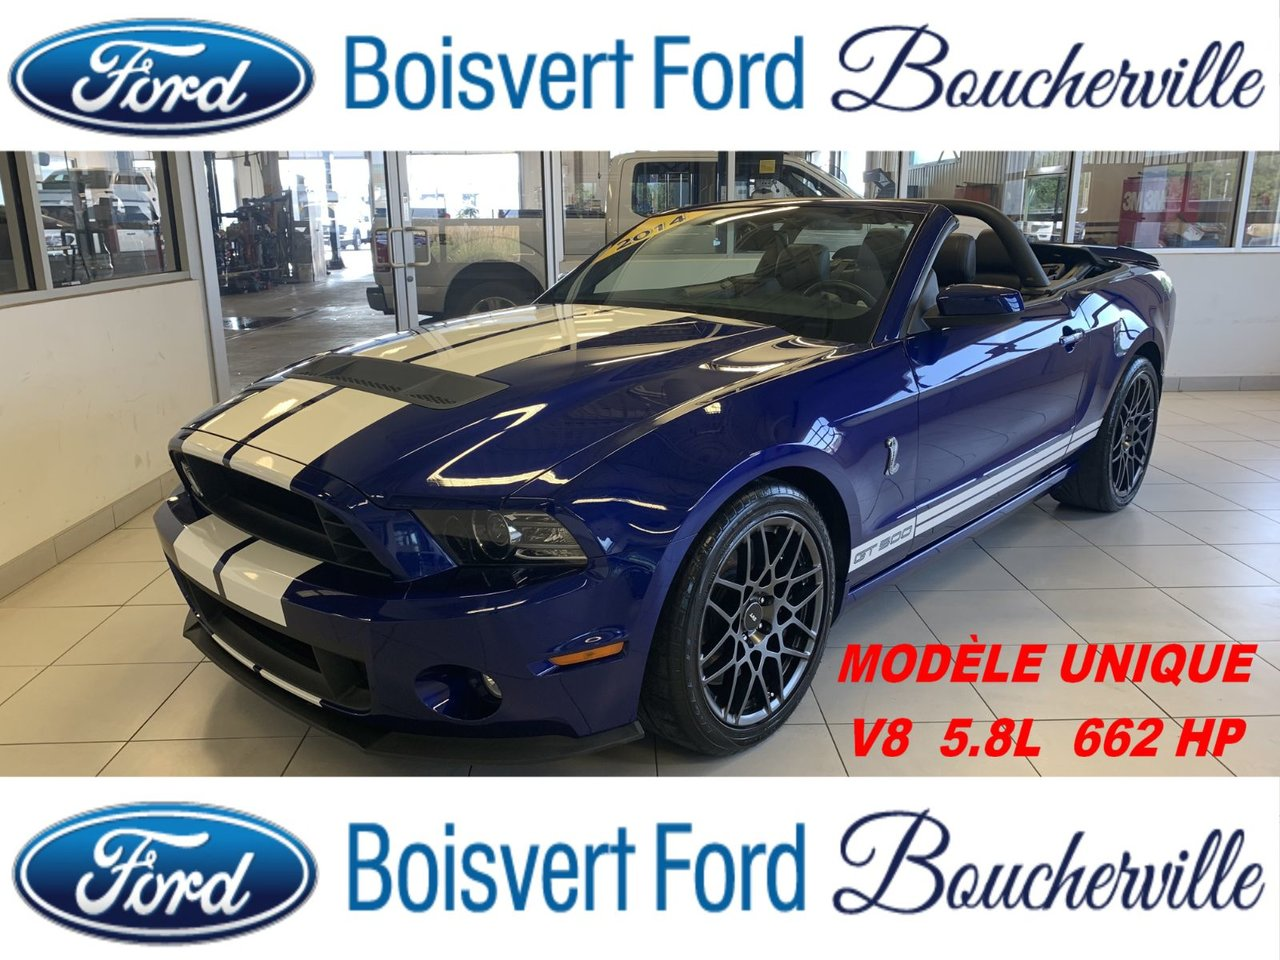 2014 Ford Mustang Shelby GT500 662 HP